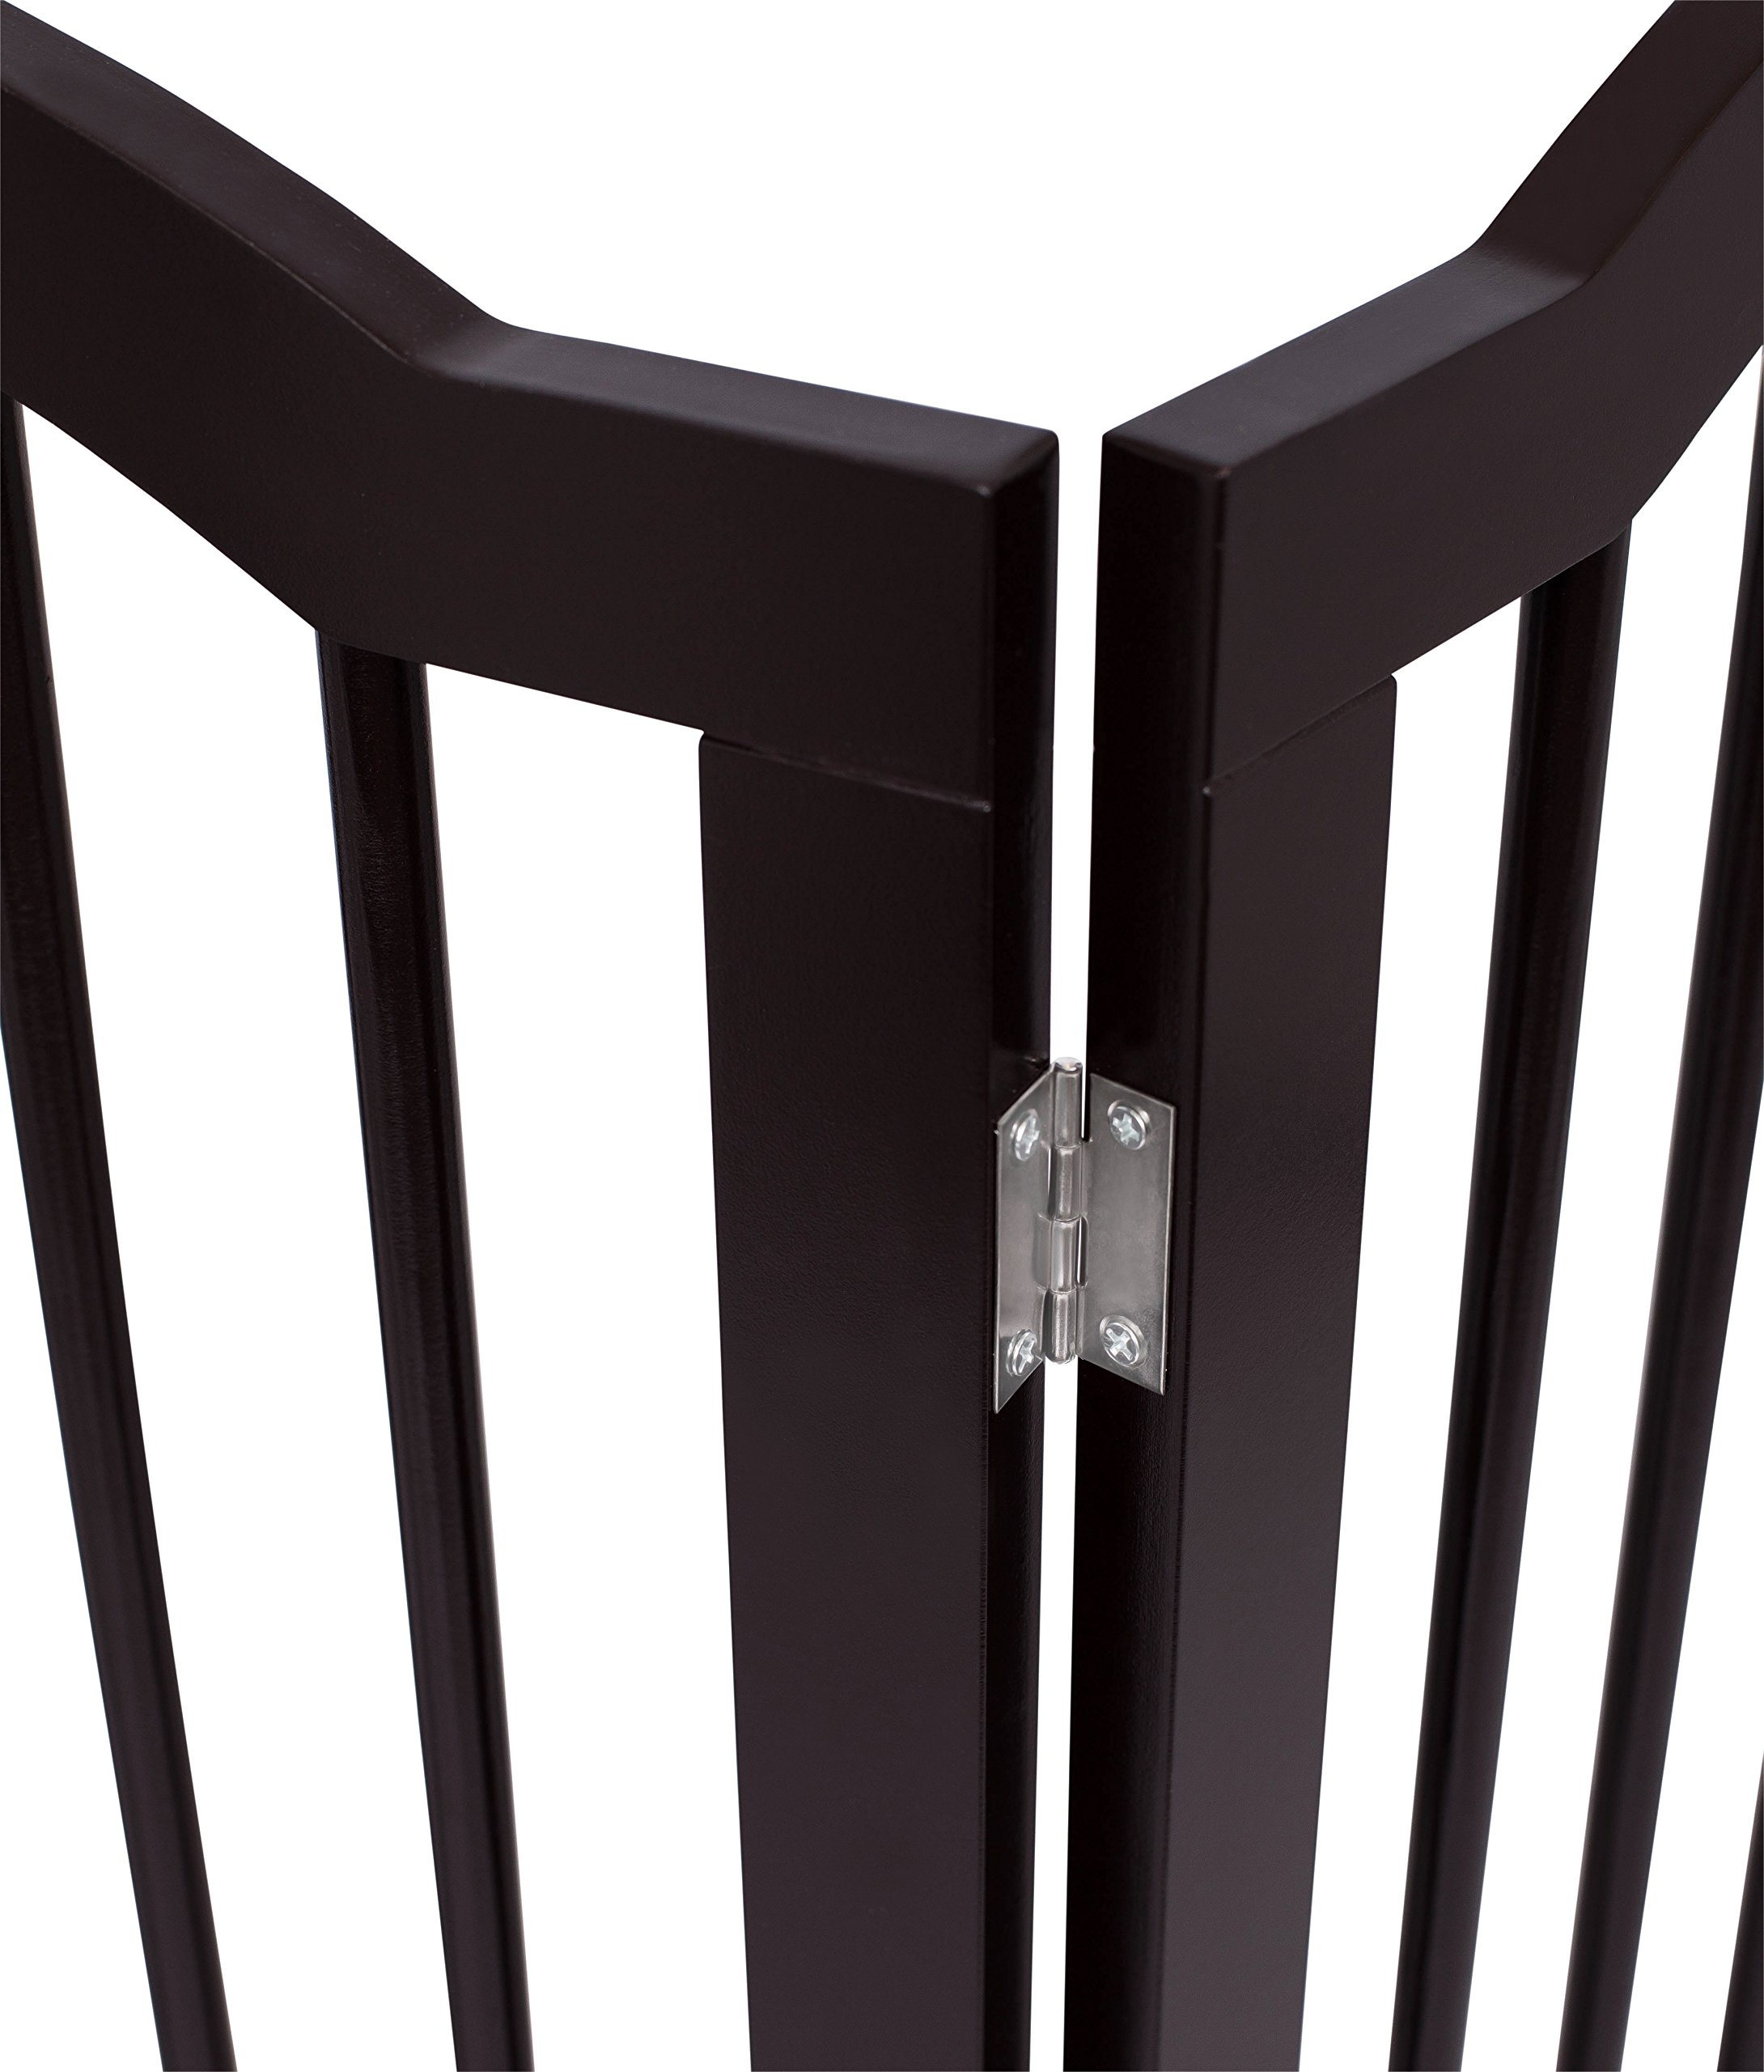 Internet's Best Pet Gate with Arched Top   4 Panel   36 Inch Tall Fence   Free Standing Folding Z Shape Indoor Doorway Hall Stairs Dog Puppy Gate   Fully Assembled   Espresso   Wooden by Internet's Best (Image #4)